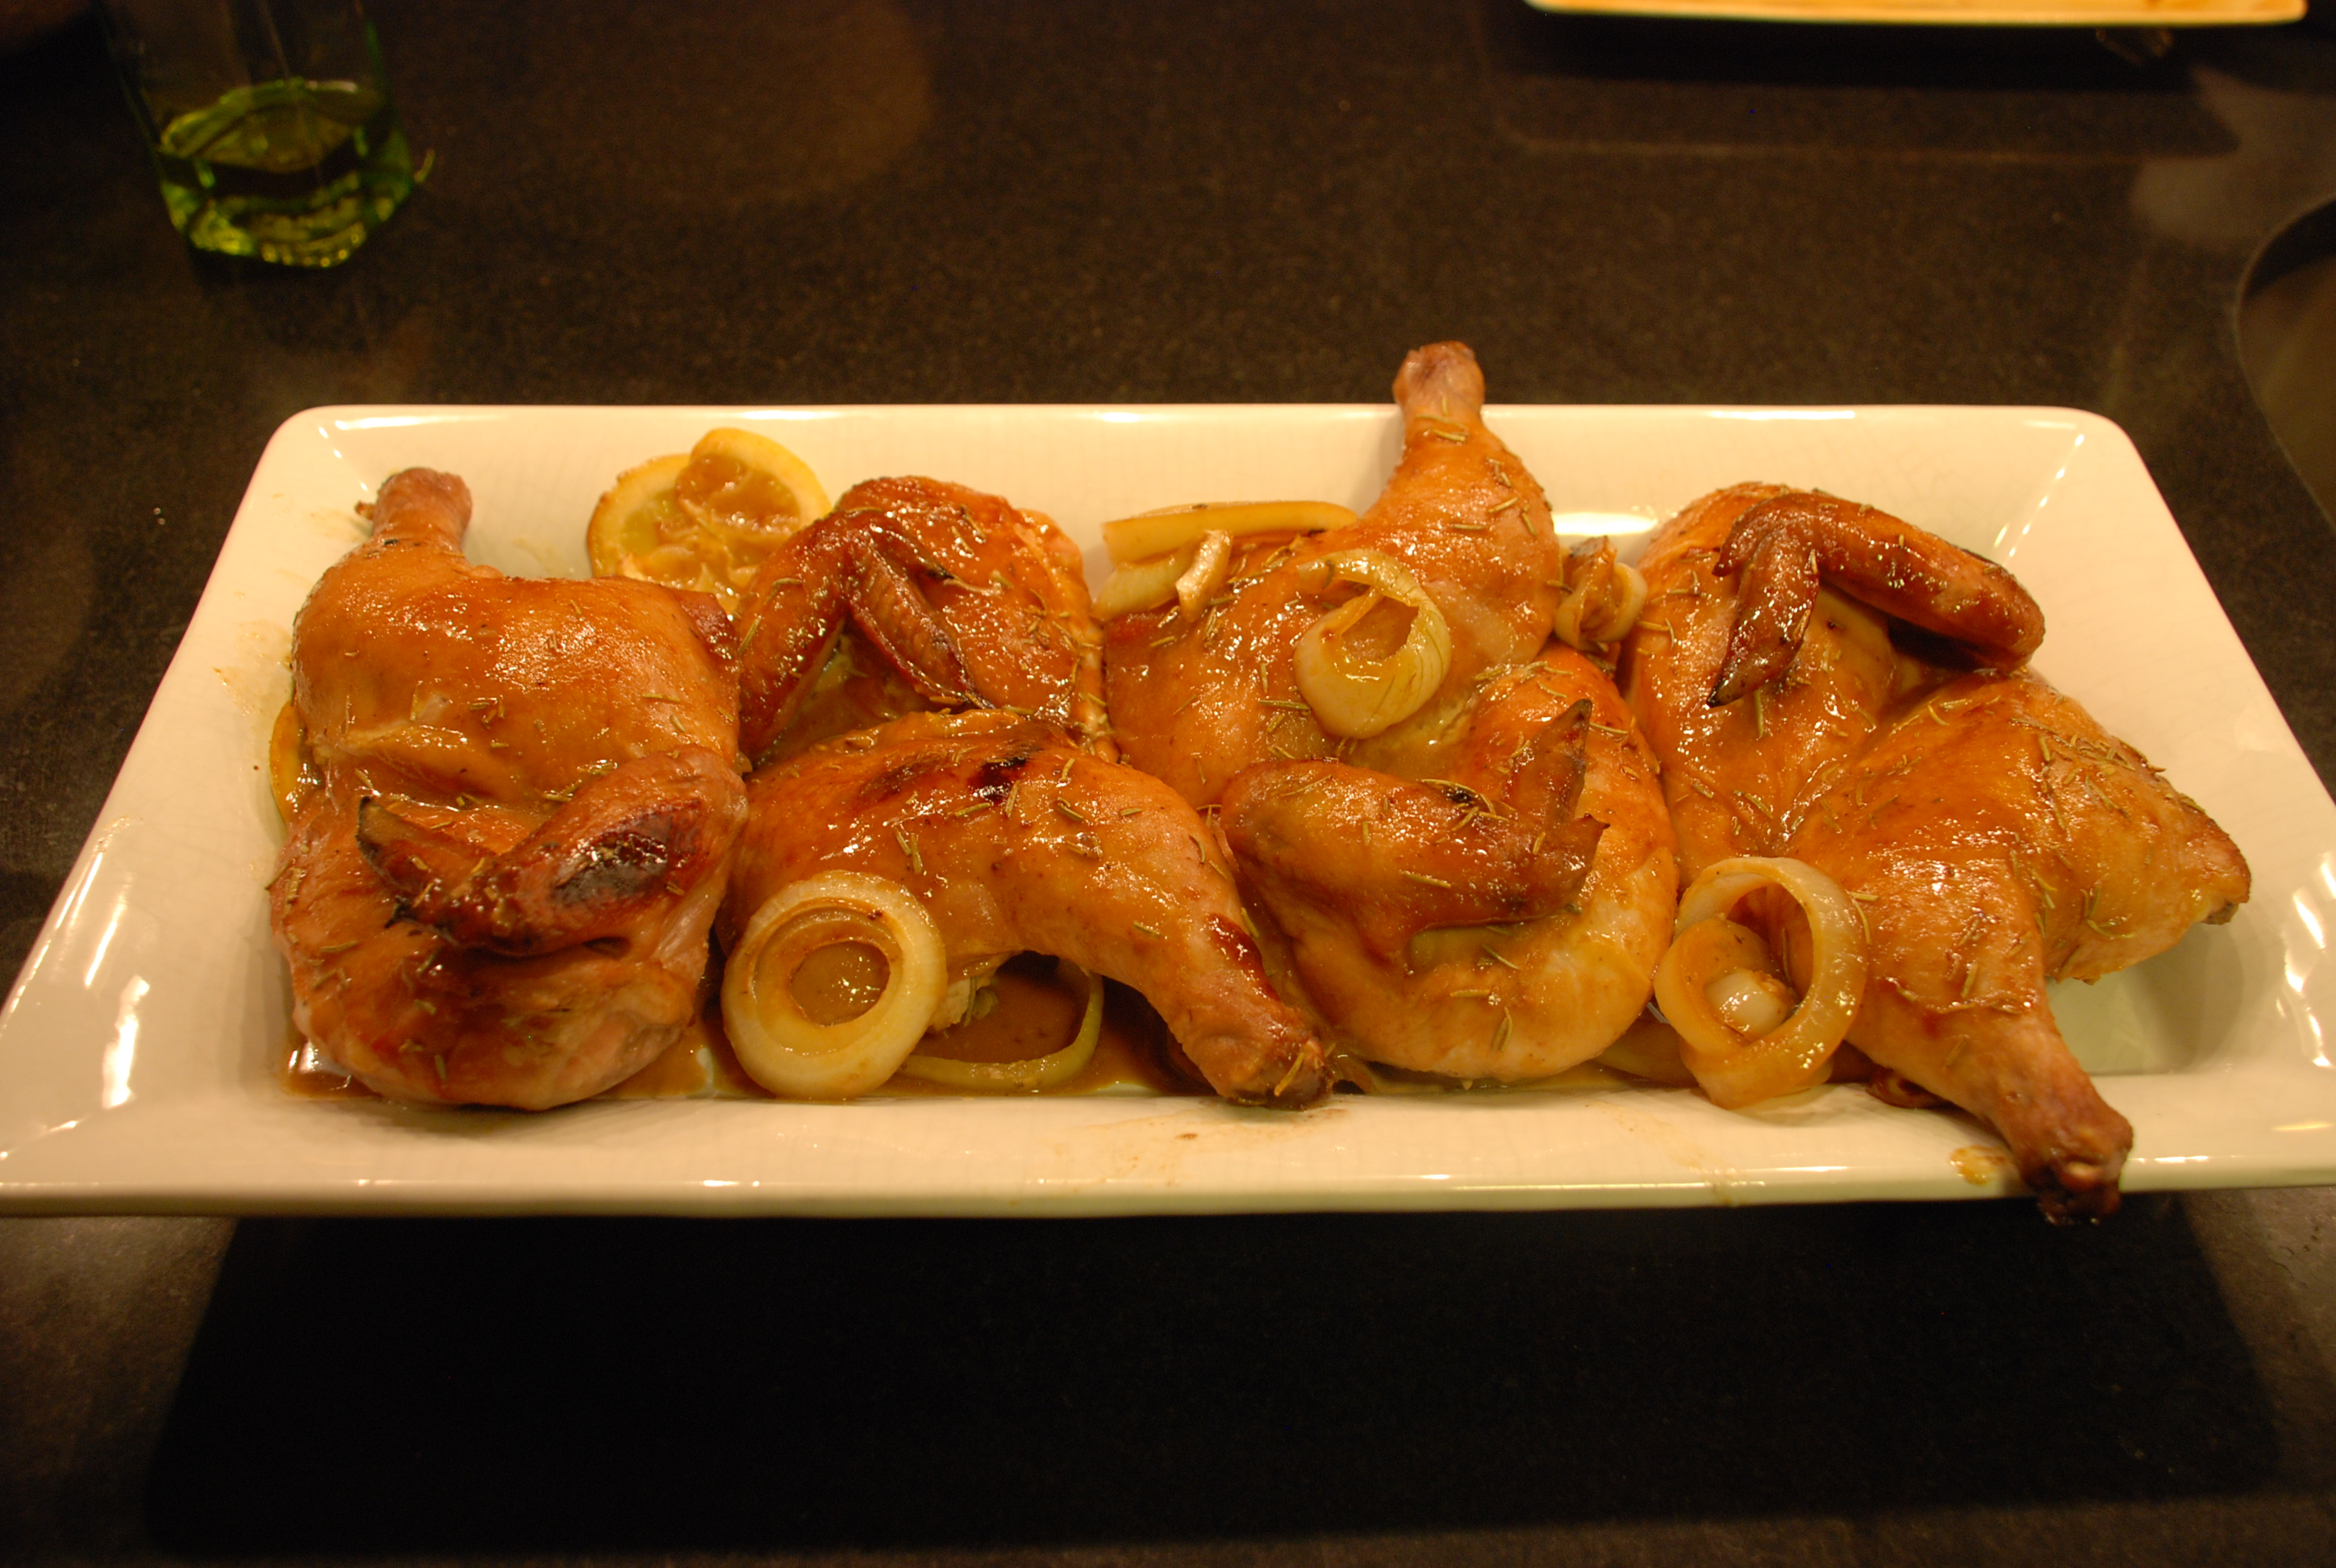 Mustard teriyaki cornish hens on a white plate.